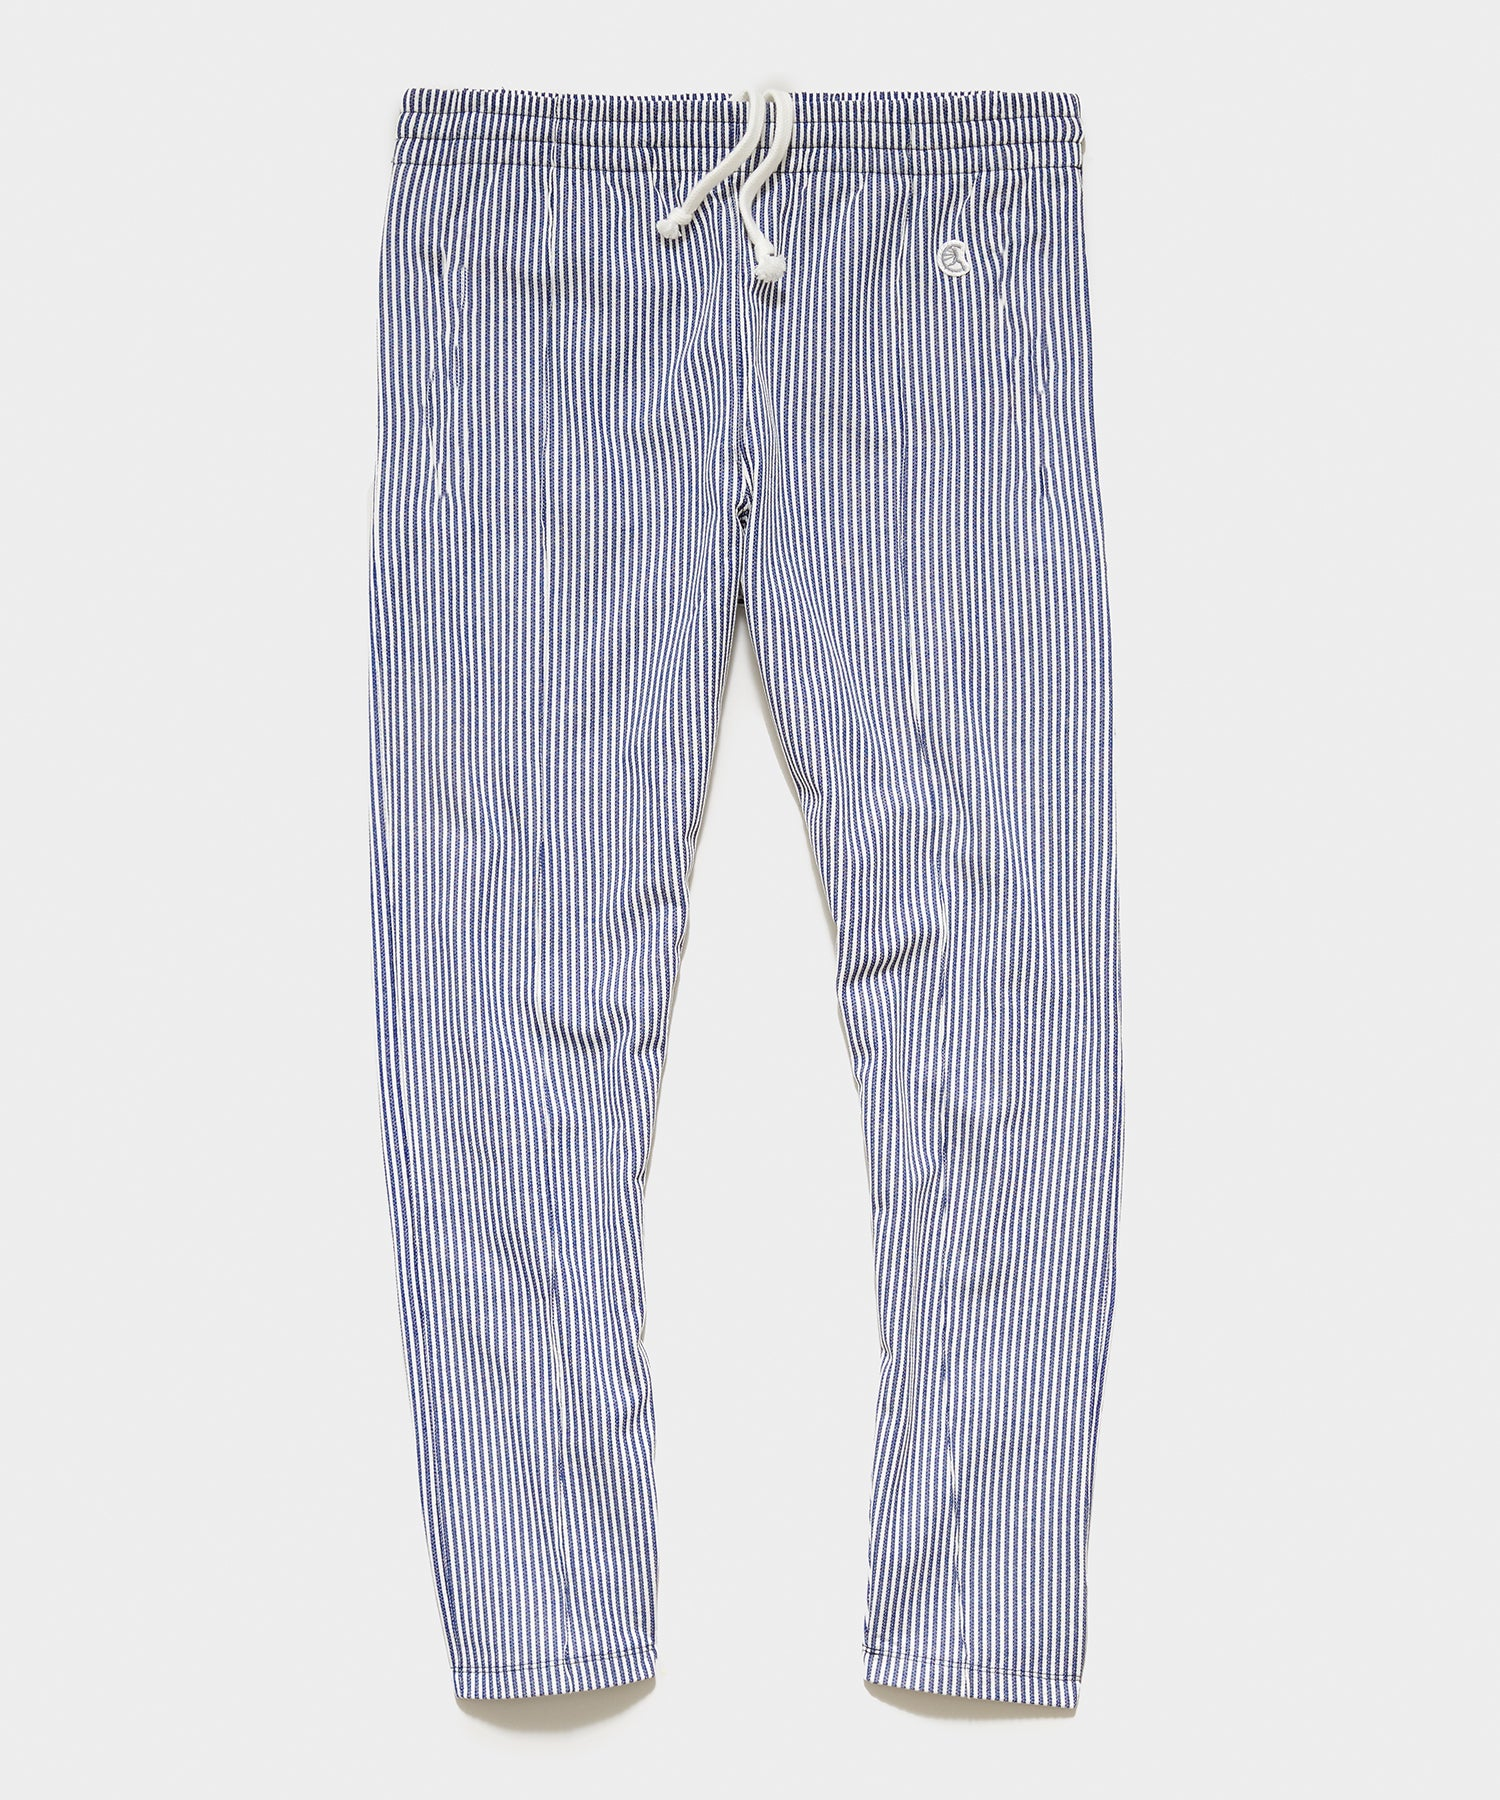 Seersucker Track Pant in Navy